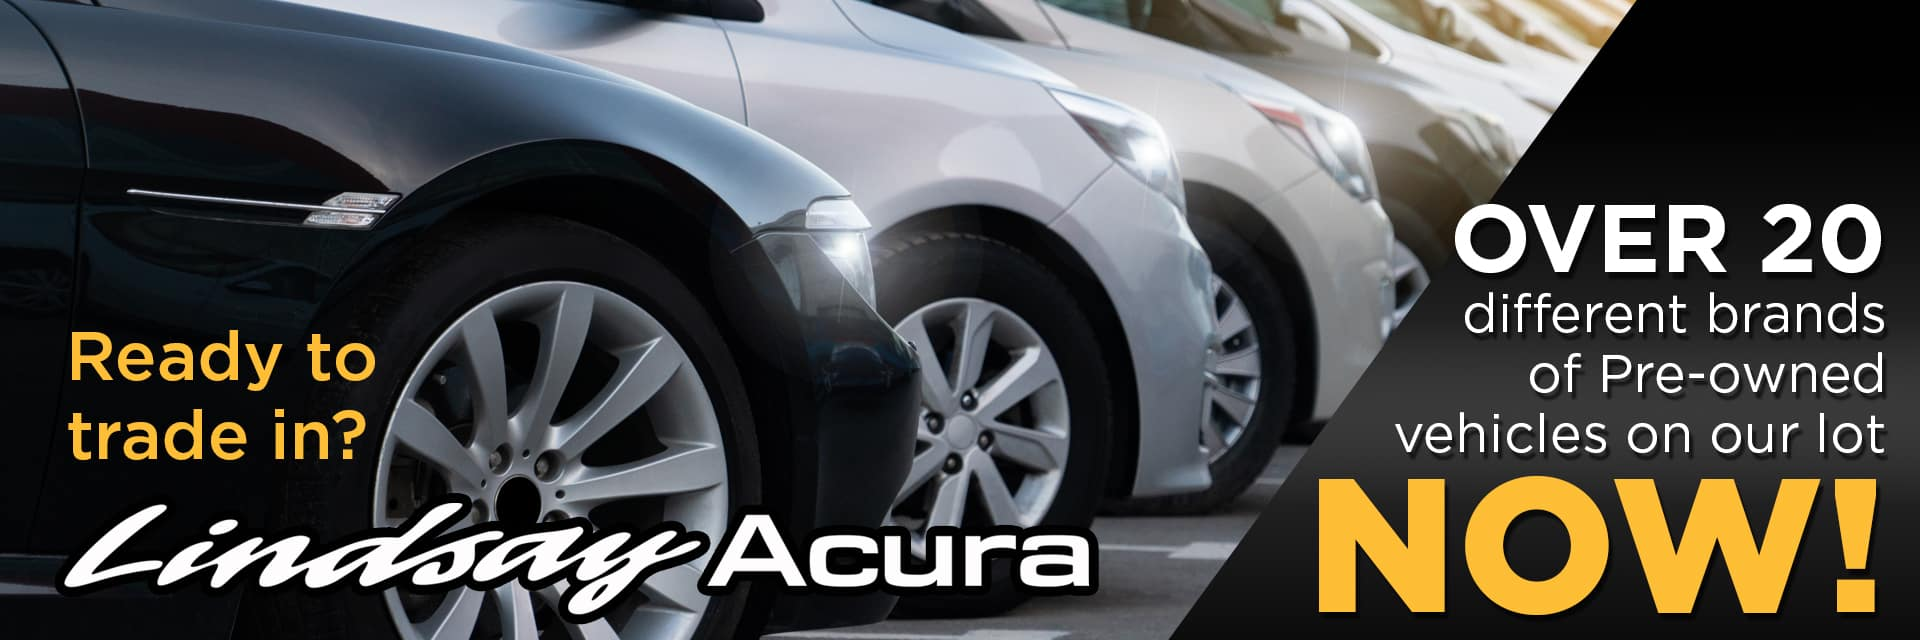 Acura-Preowned_20models_AUG21_NEW